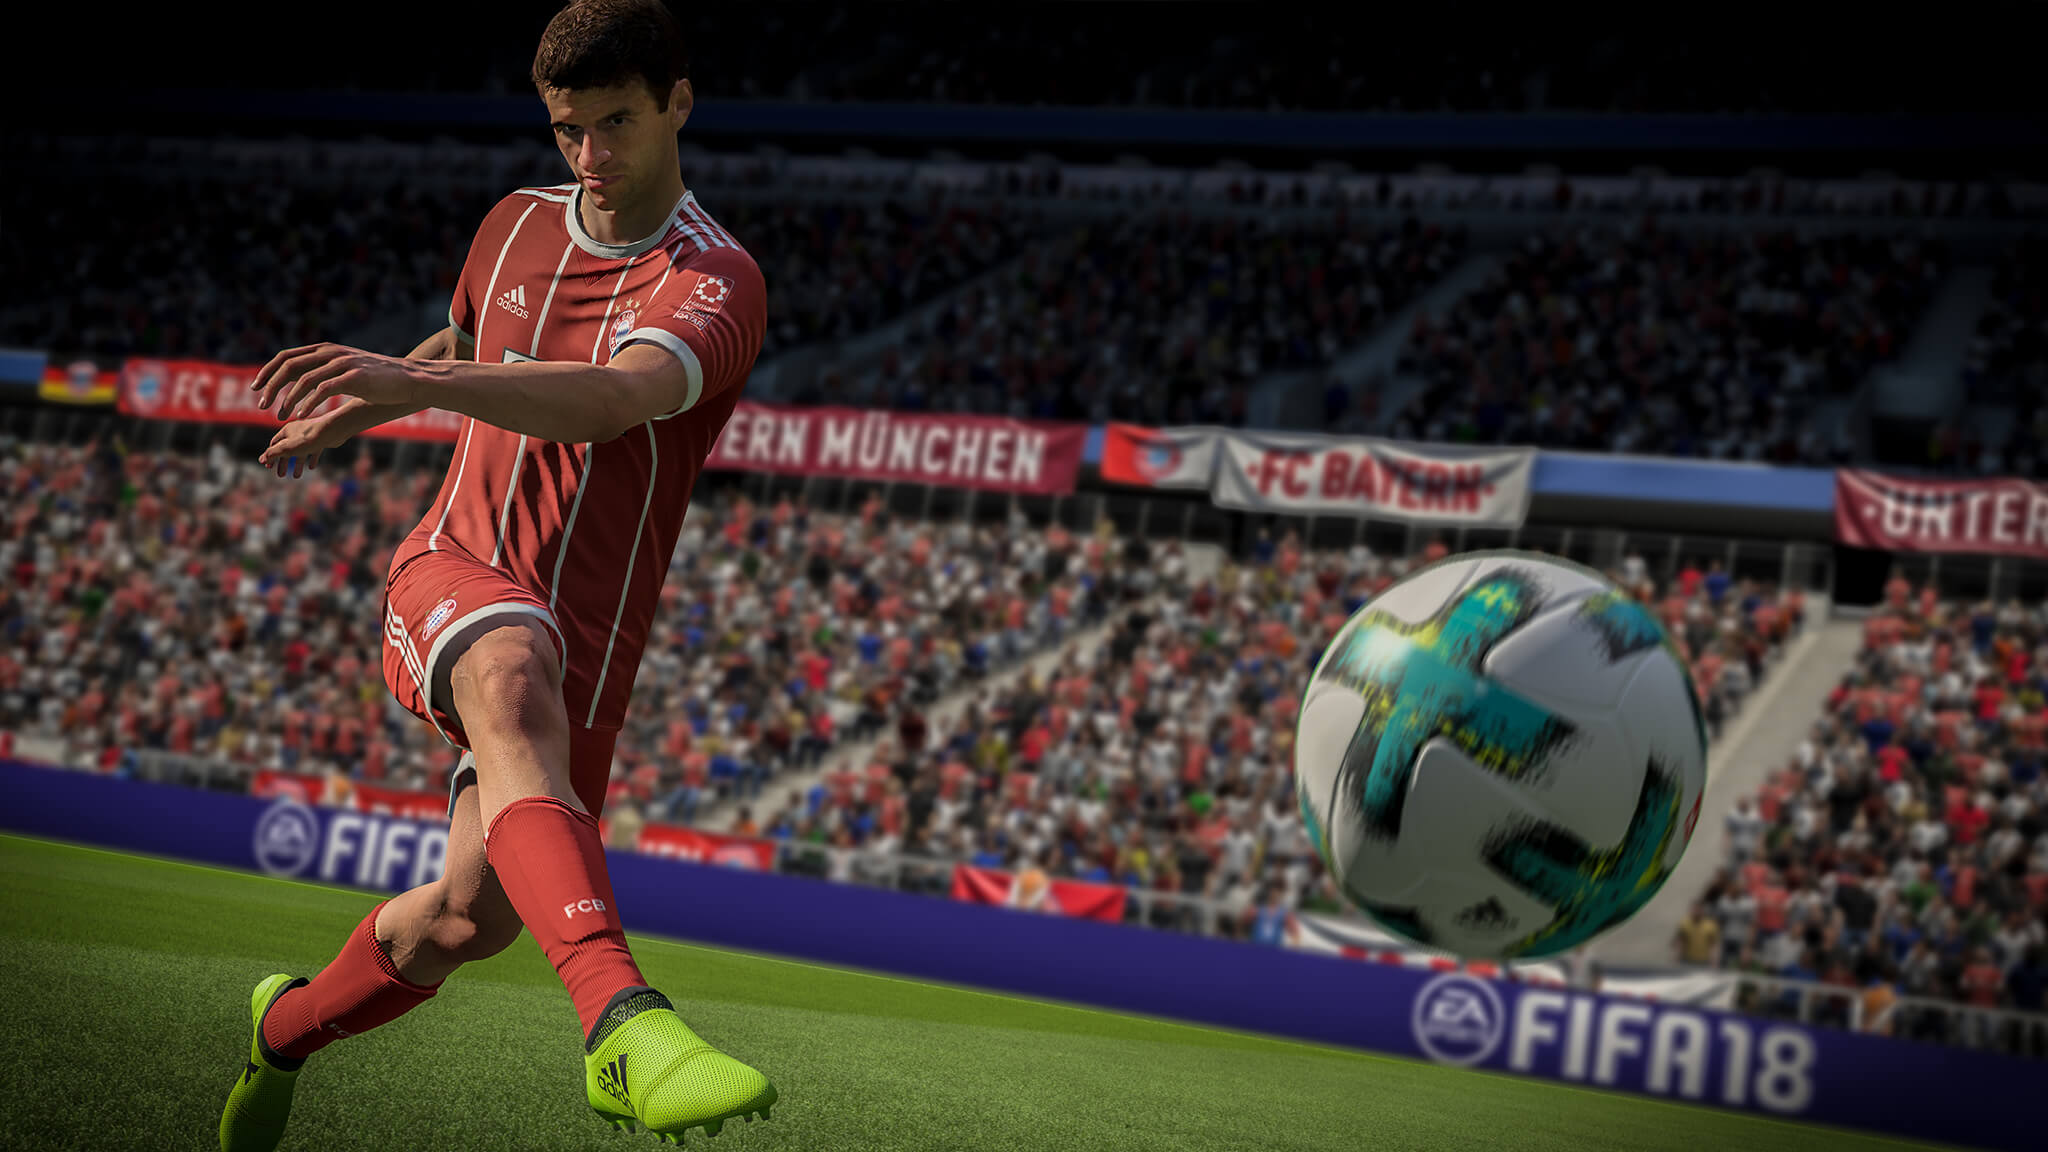 The Weekly News Roundup: Fortnite, Red Dead 2, and FIFA 18